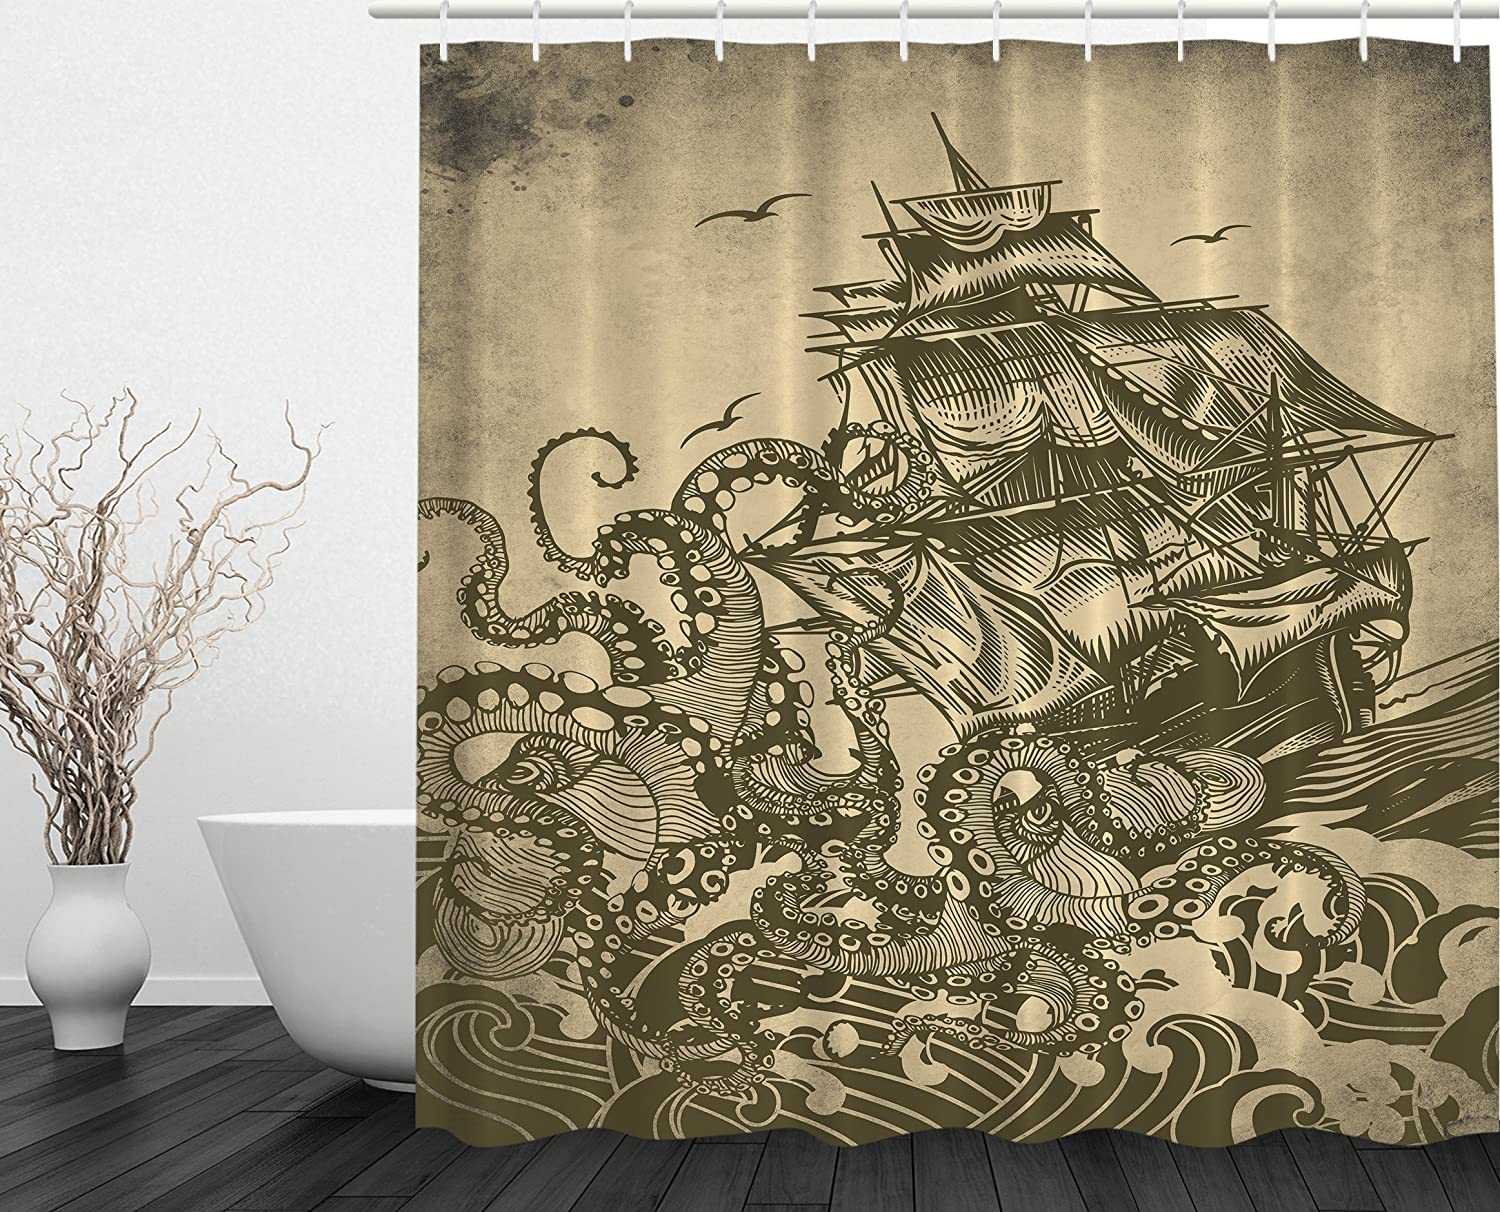 Shower Curtains: Ocean Shower Curtain Sail Boat Waves And Octopus Kraken